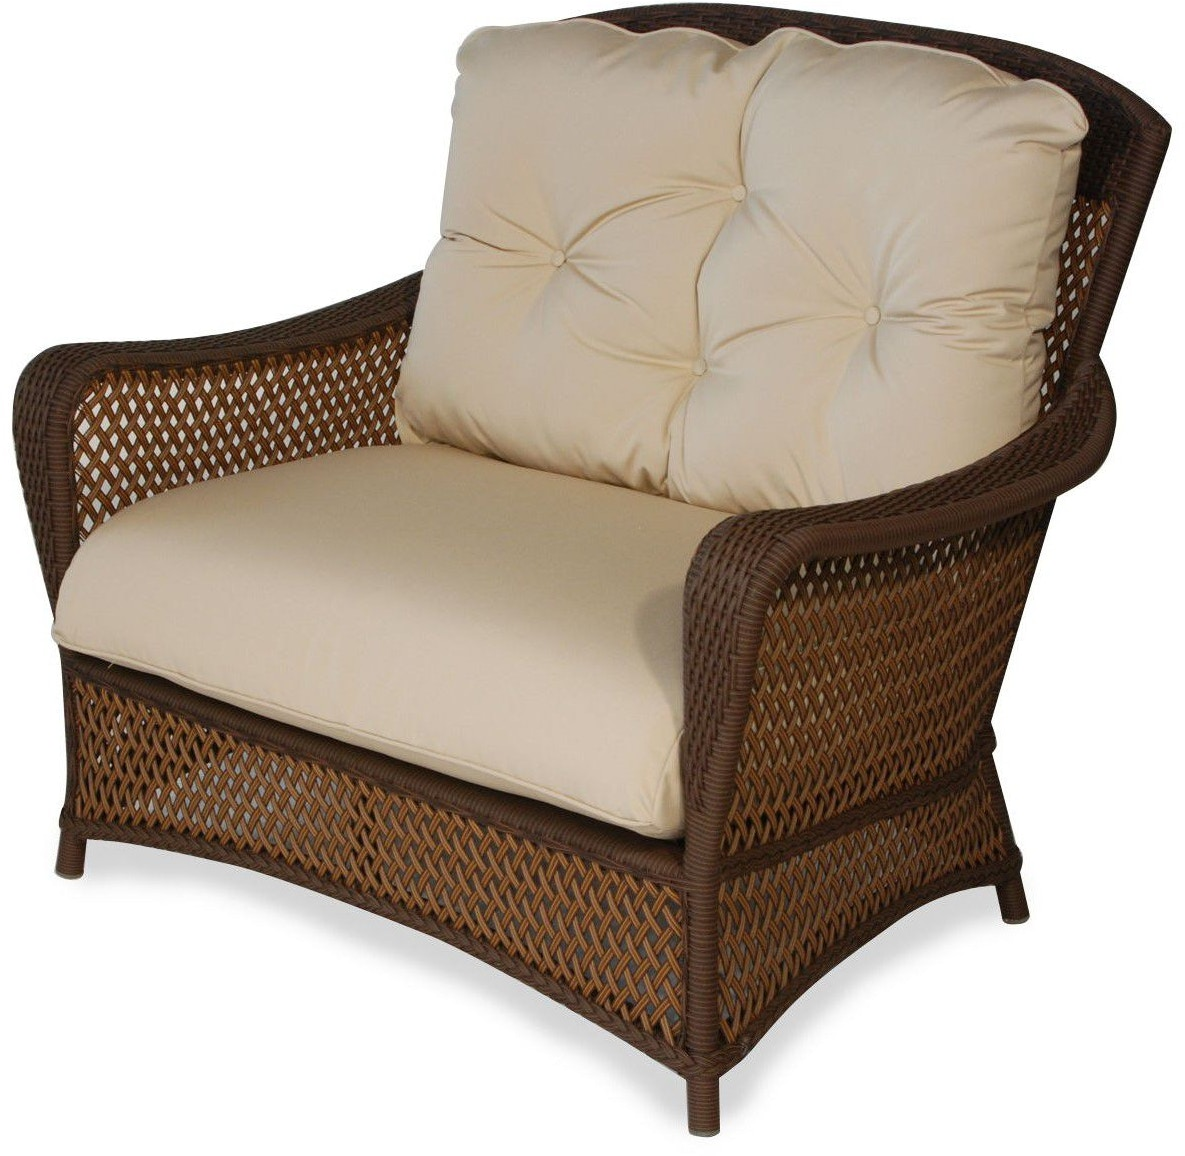 Lloyd Flanders Outdoor Patio Chair And A Half 71315 Zing